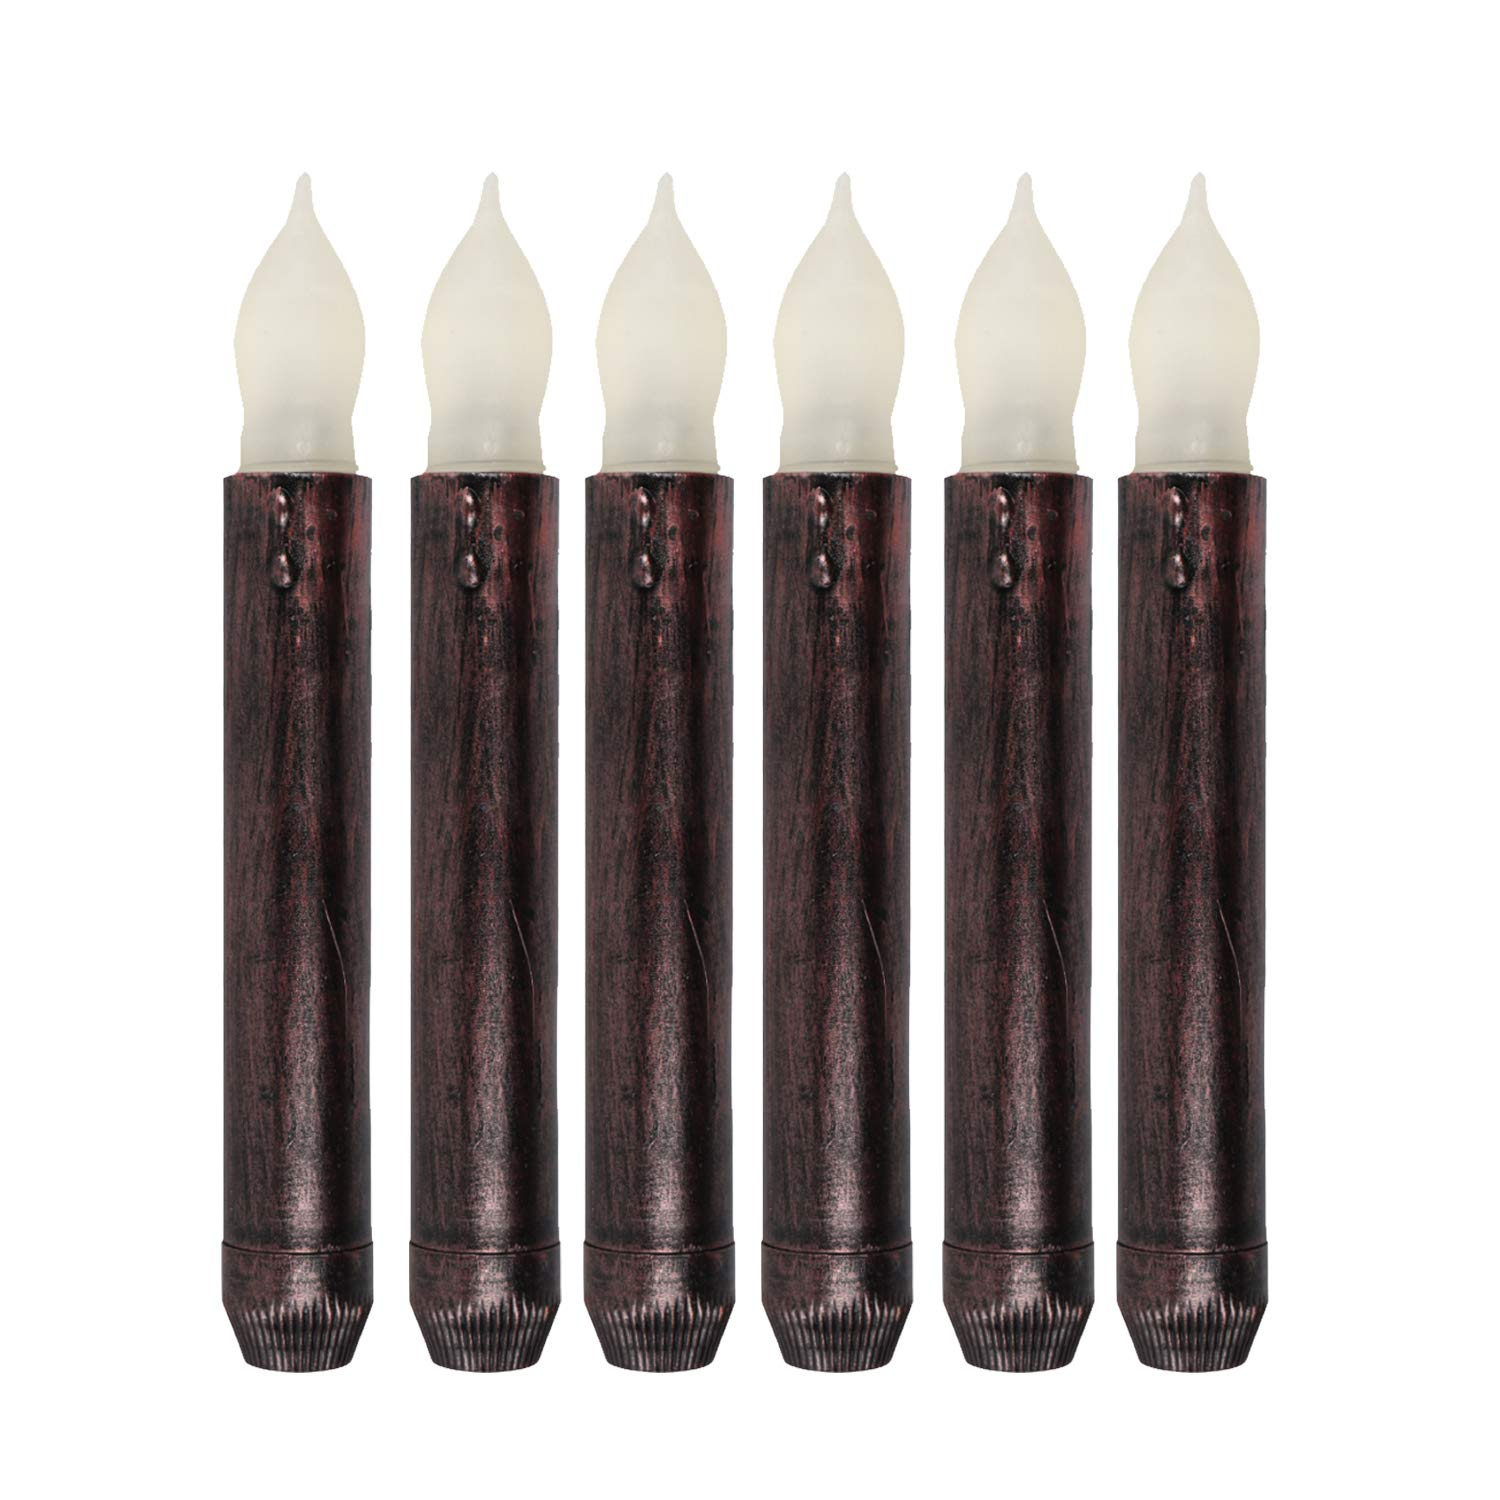 Set of 6 Flameless Black Taper Candles Battery Operated Flameless Unscented Led Candle Orange Flickering Short Bulb for Halloween Decoration Church Memorial Service Beauty Collector CB-CDL5099F-6_amber